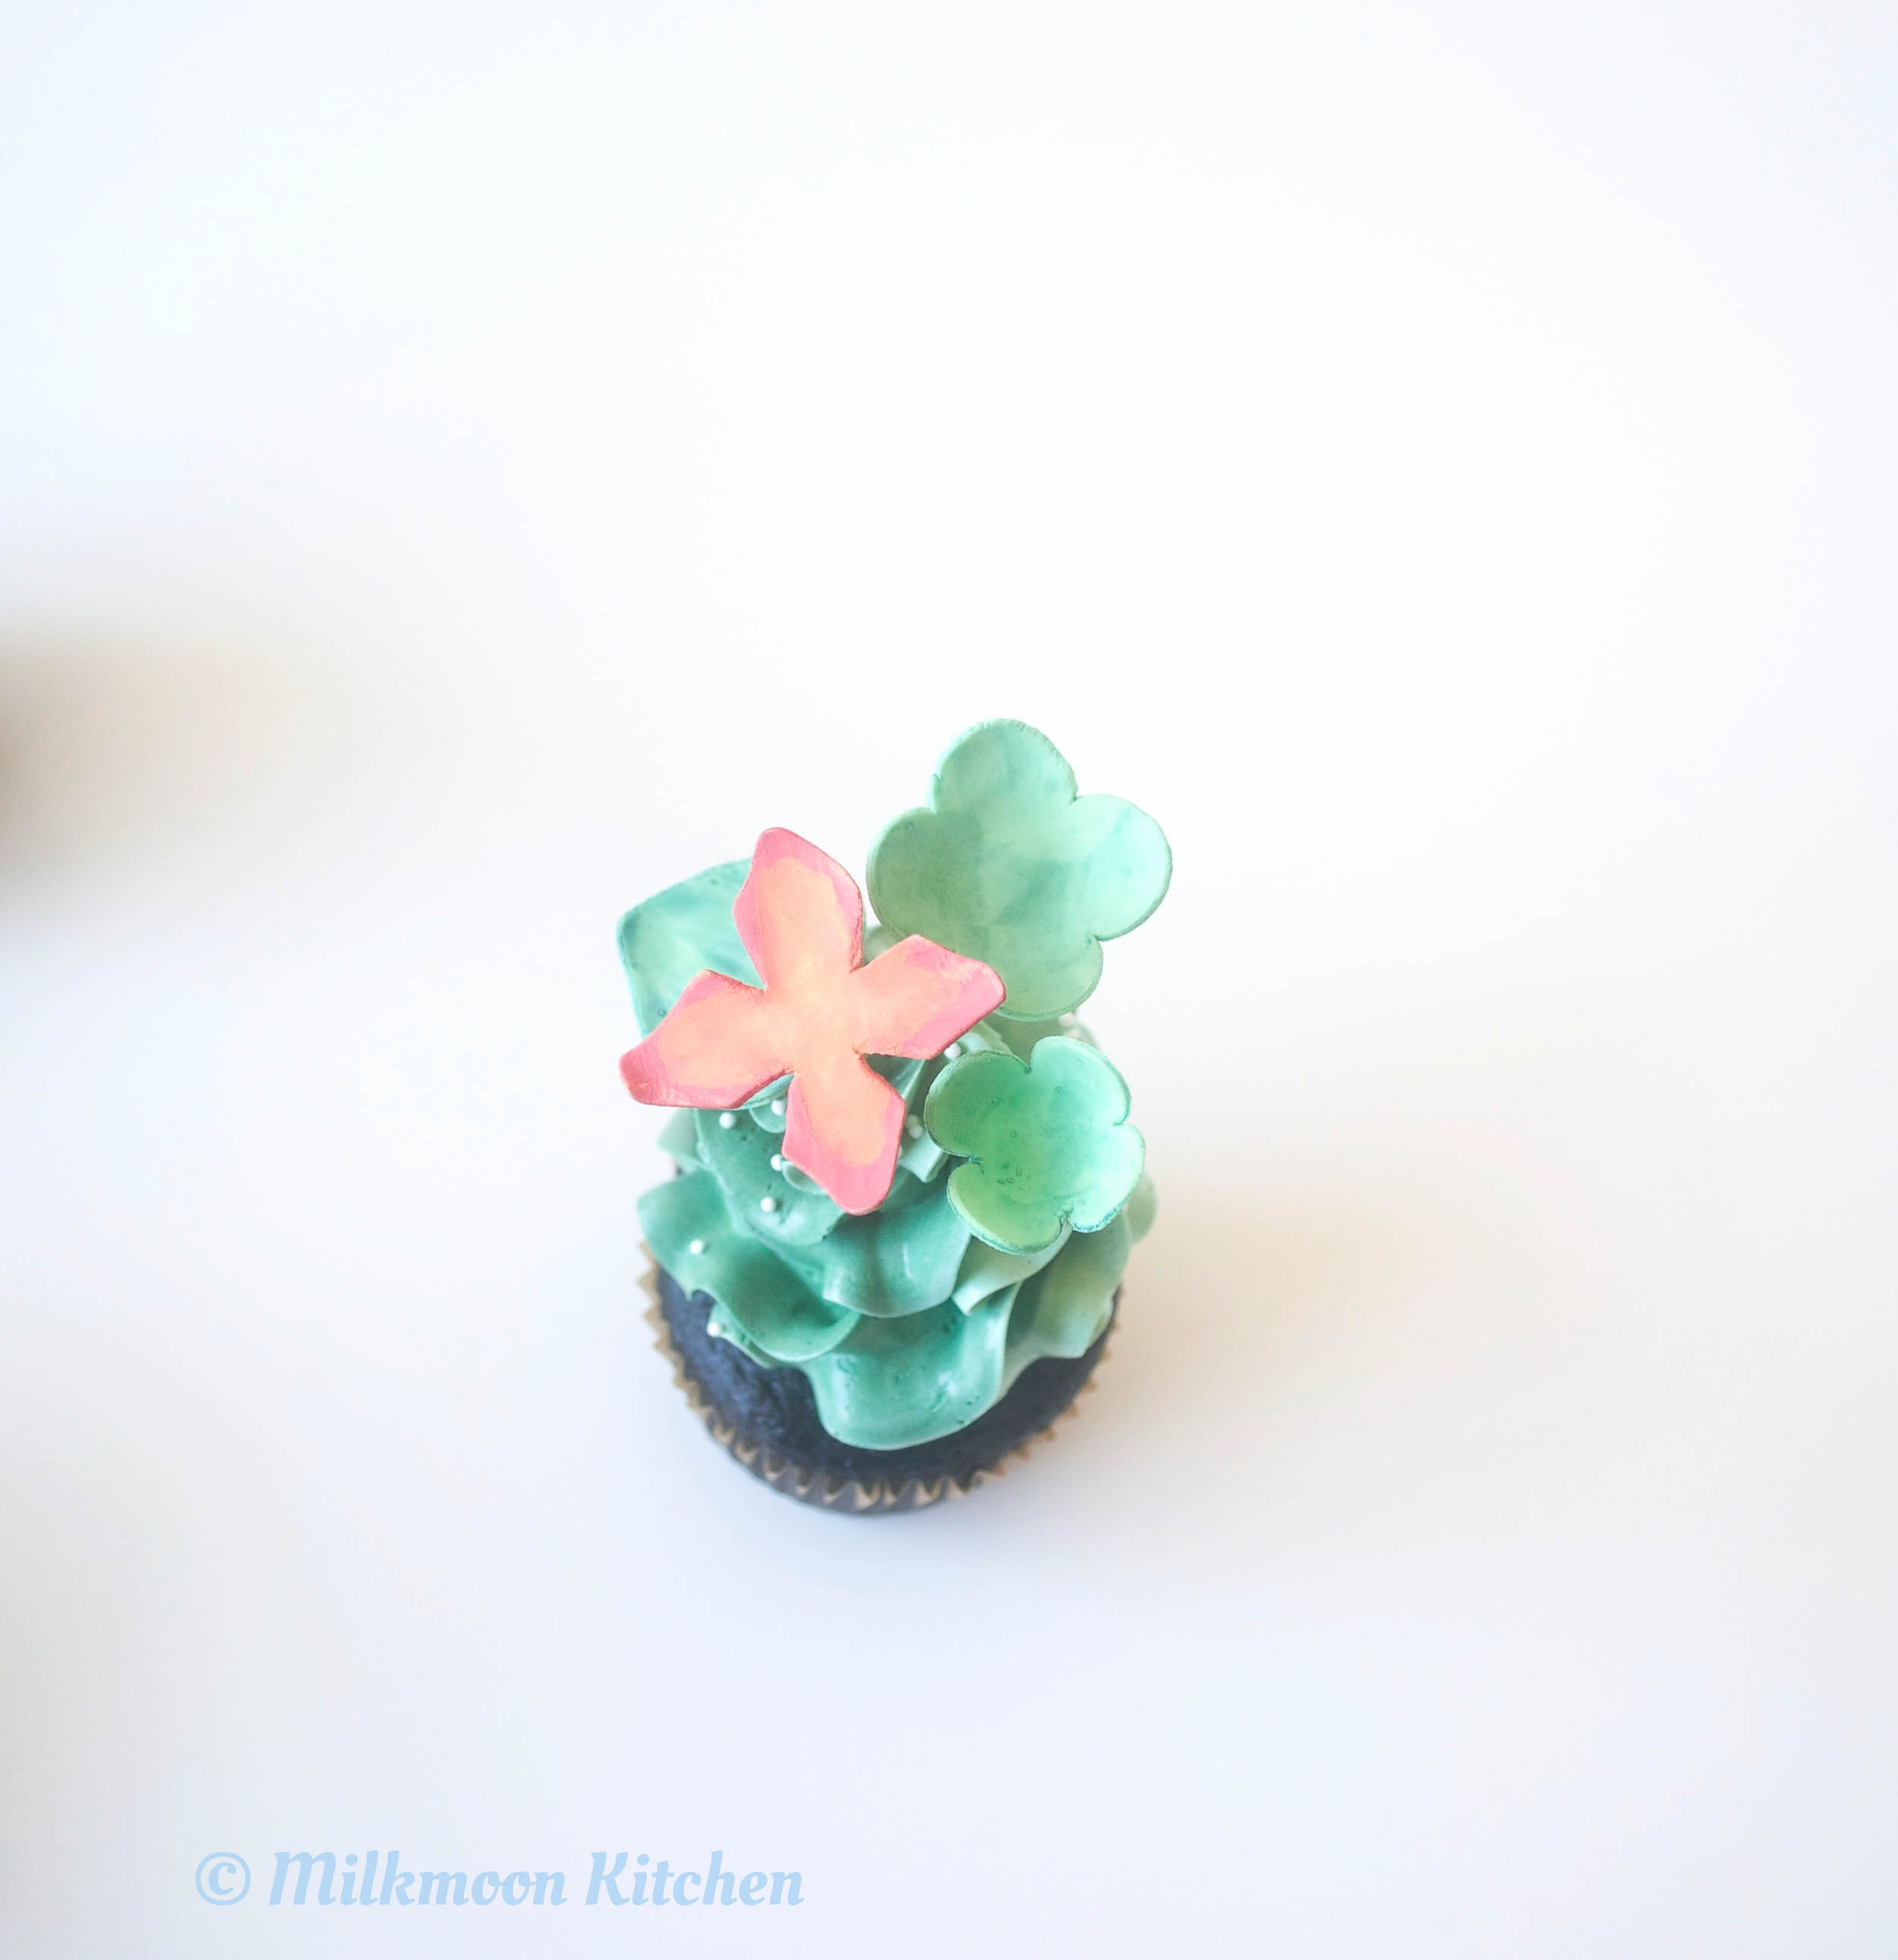 REAL Sprout Cupcakes Edited (7 of 12).jpg